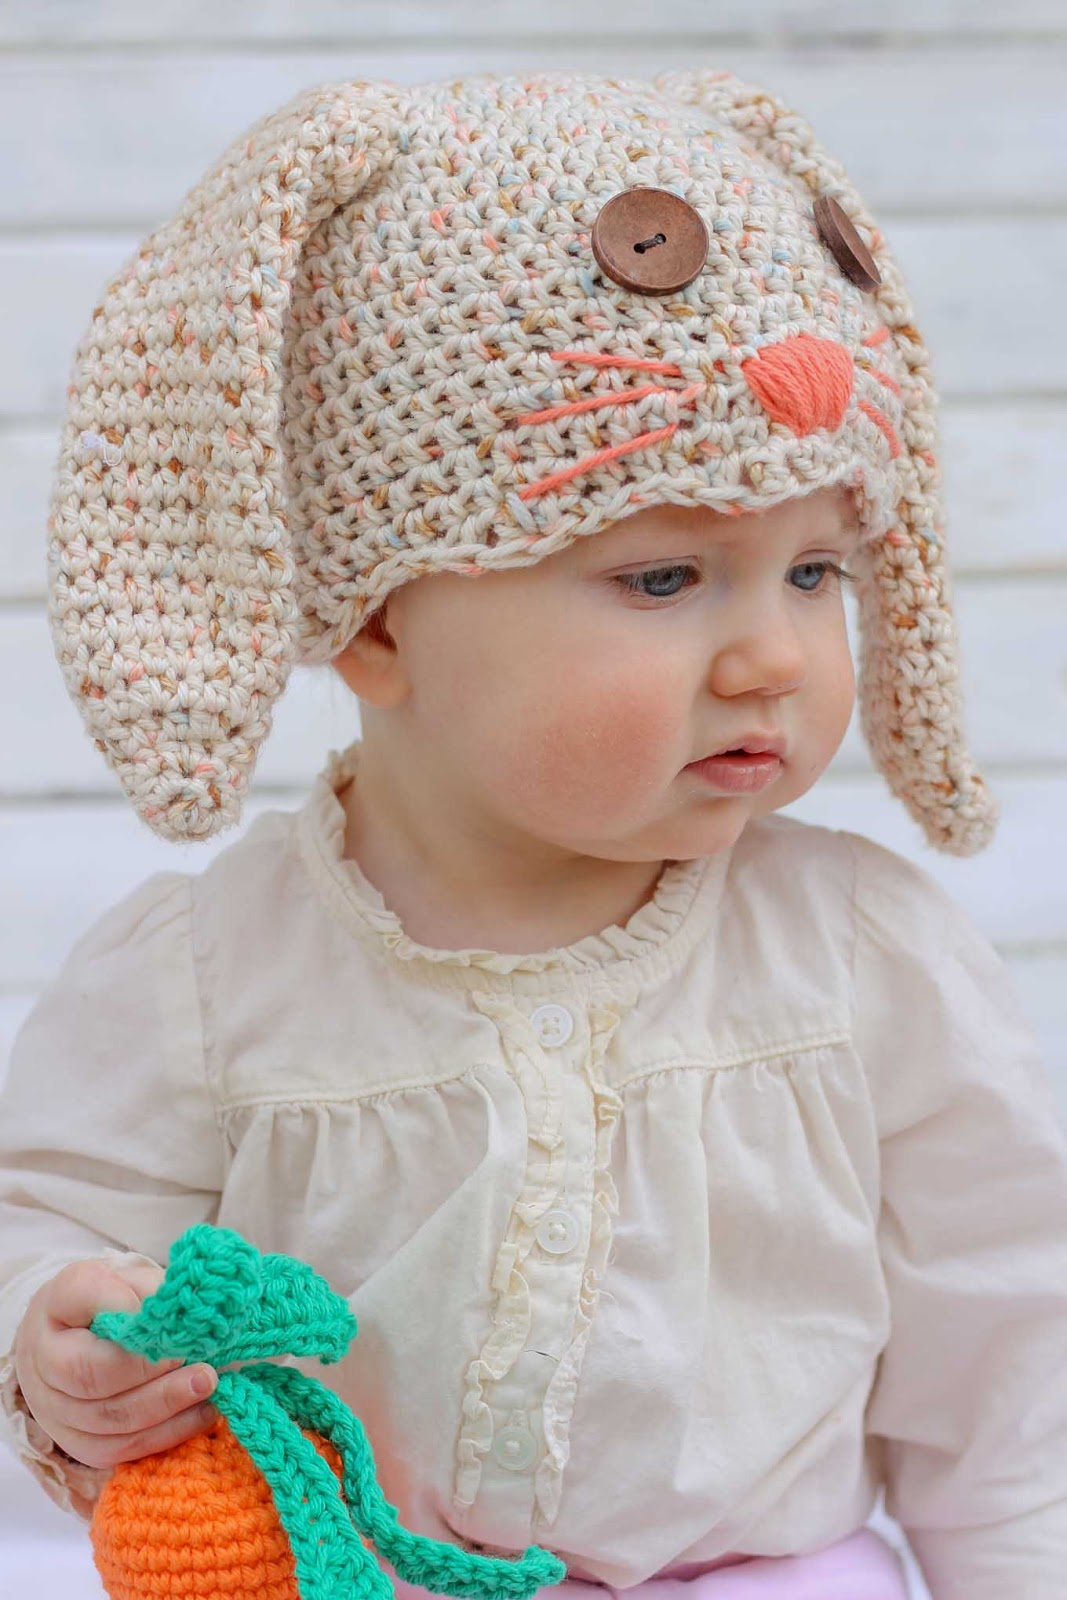 Character and Animal Crochet Hat Patterns - thefriendlyredfox.com